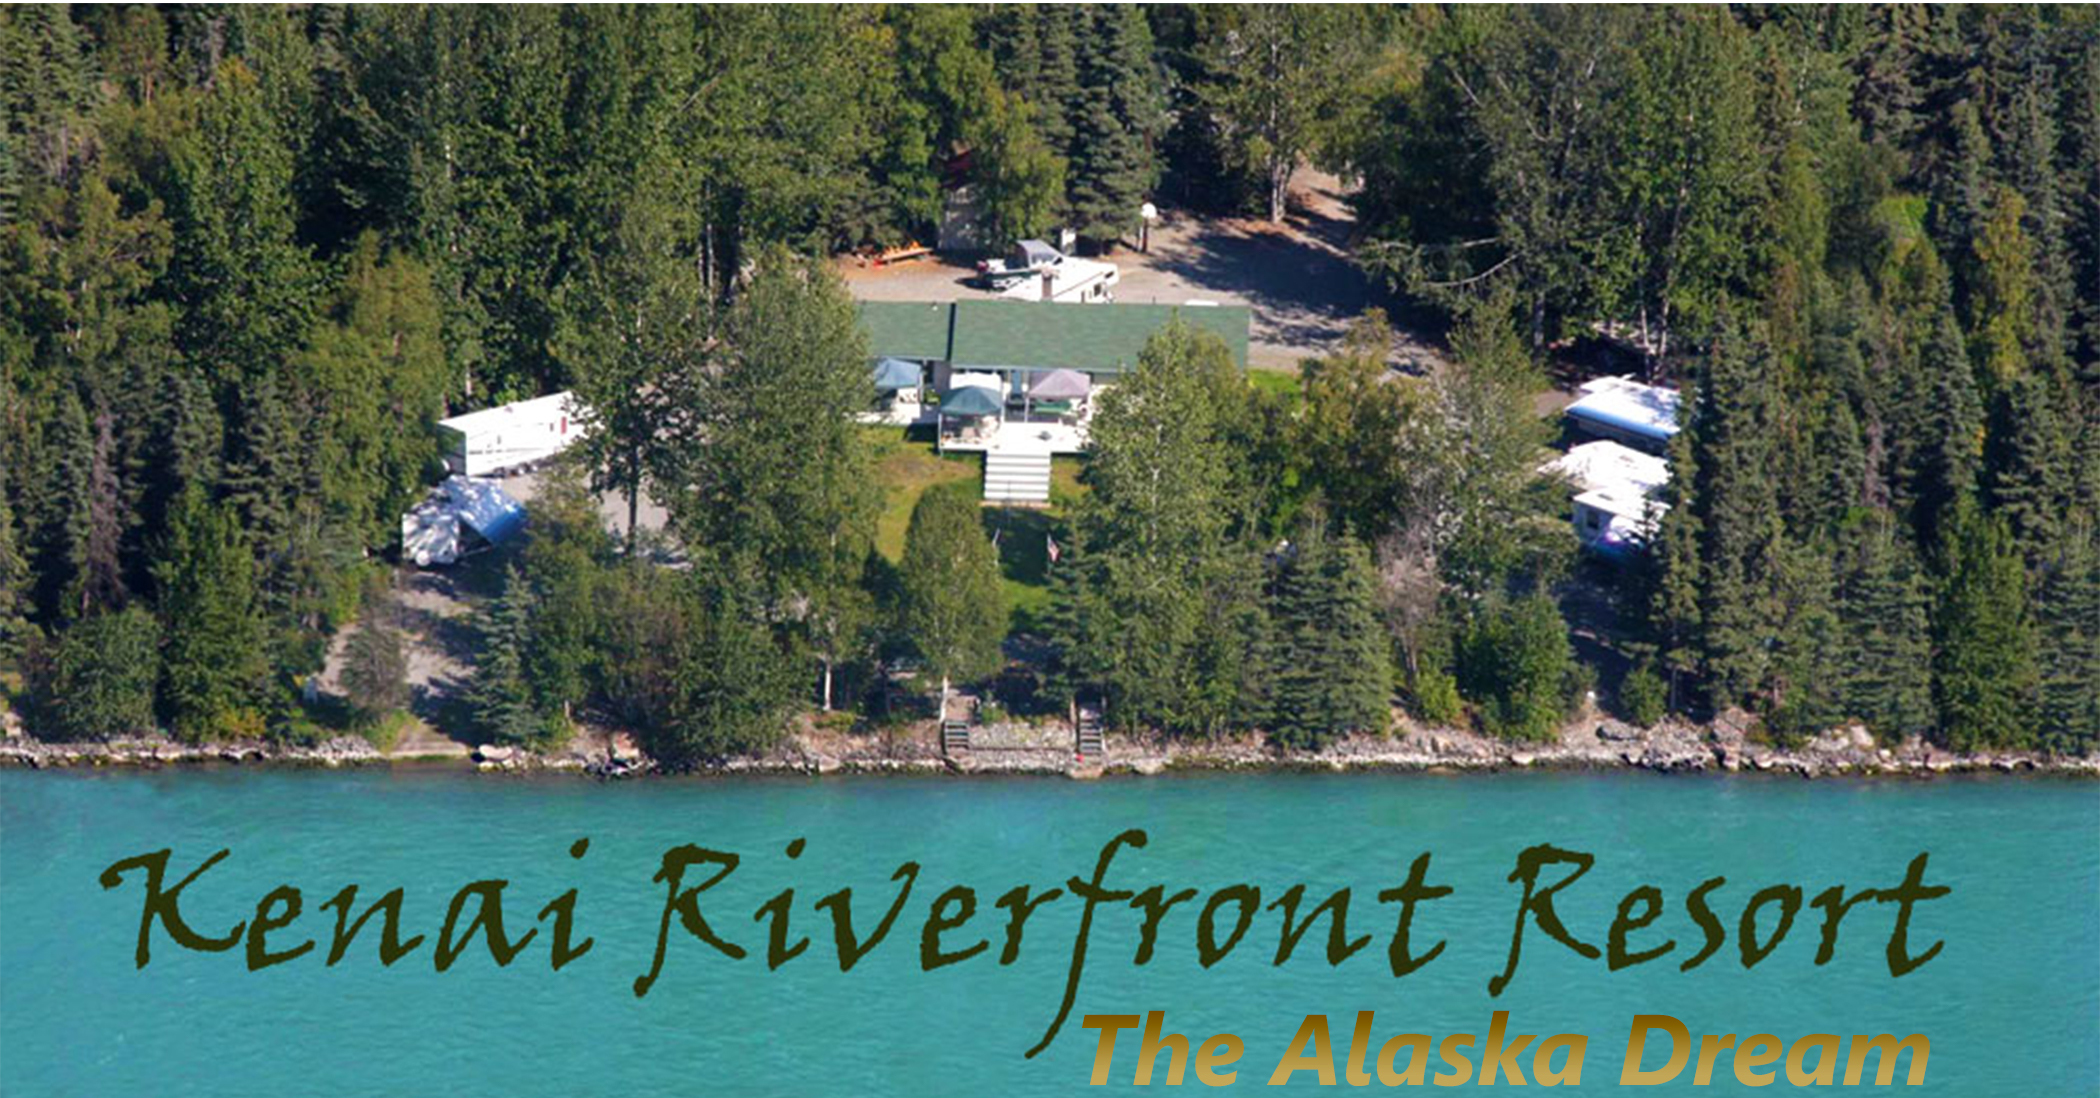 Kenai Riverfront Resort The Alaska Dream Lodging Fishing Rv Park On S